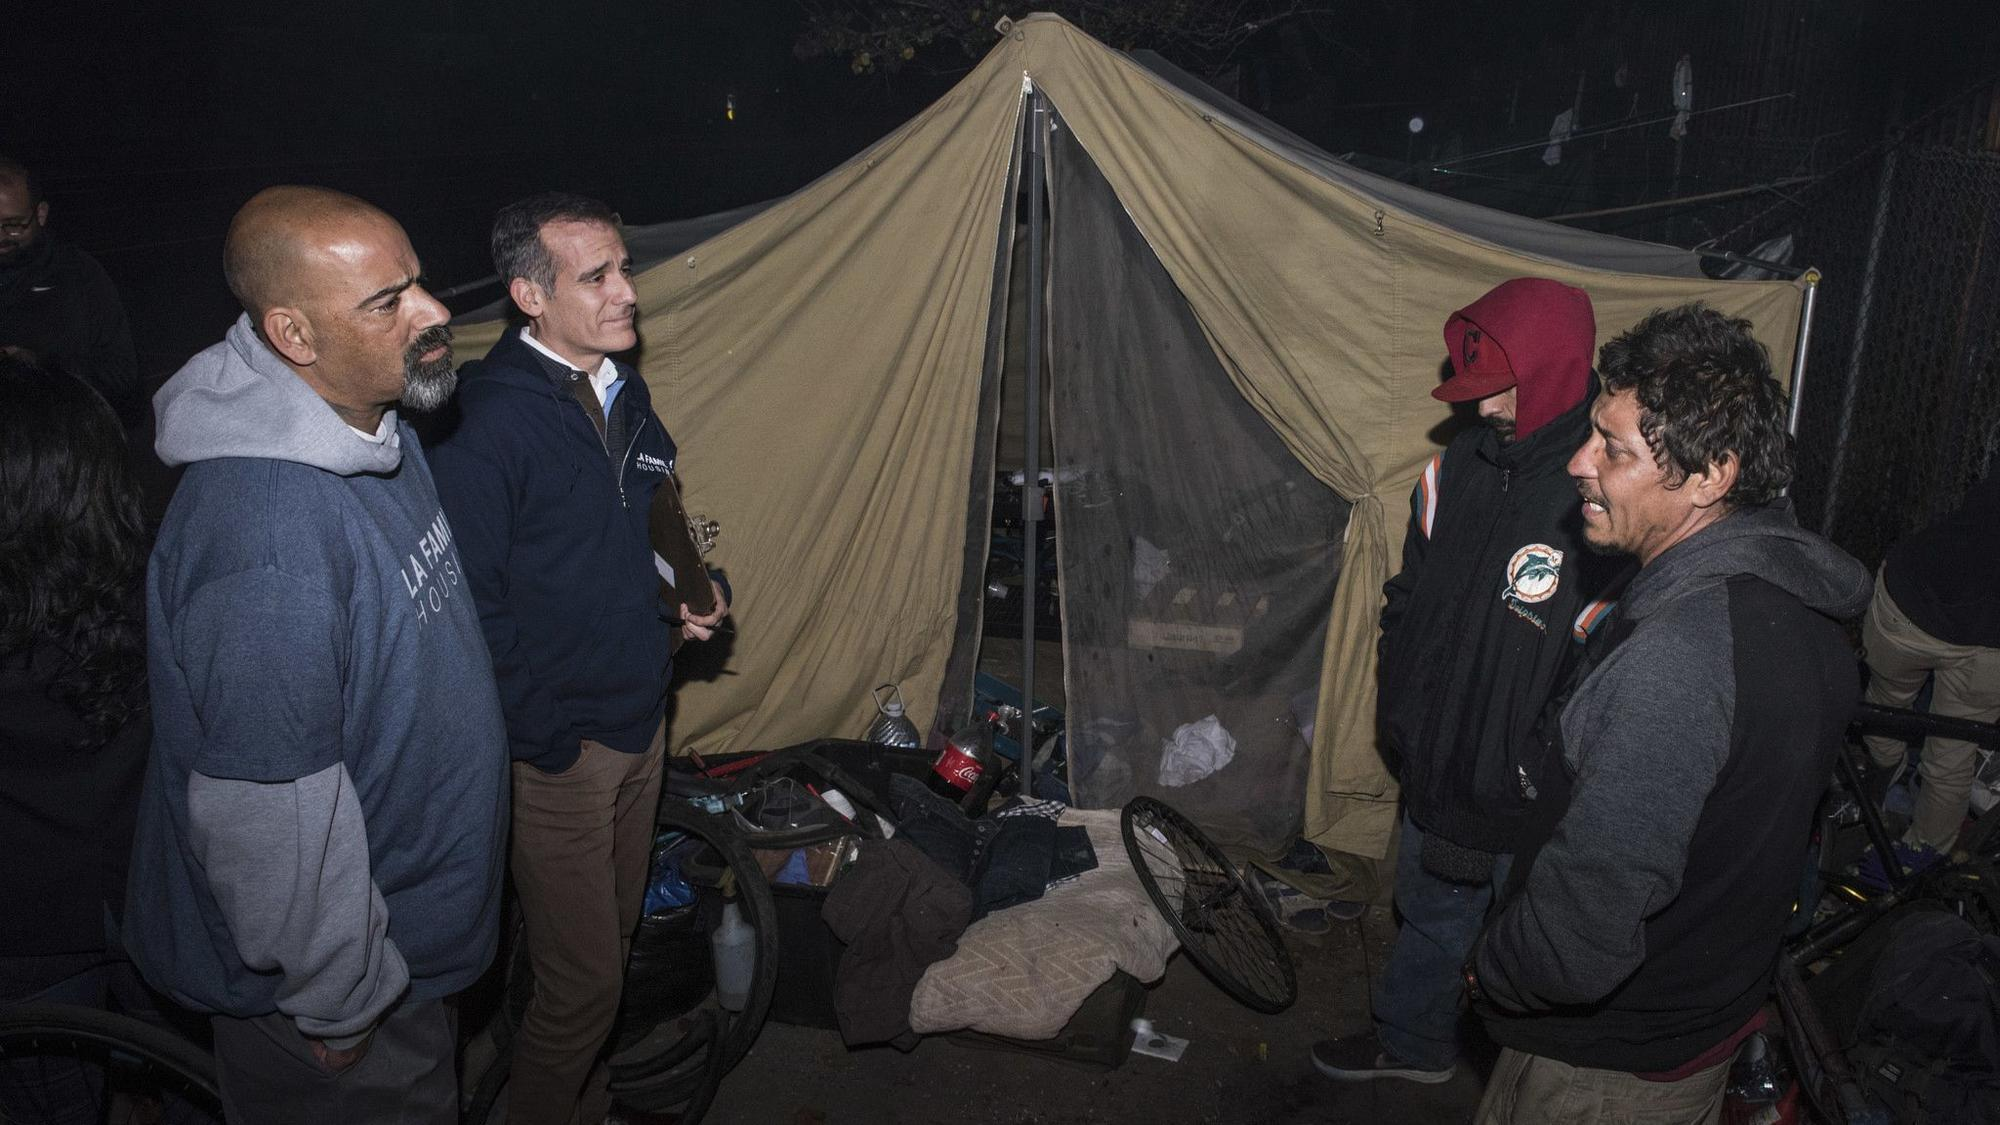 Mayor Eric Garcetti kicks off annual L.A. homeless count: 'Counting is the beginning of caring'